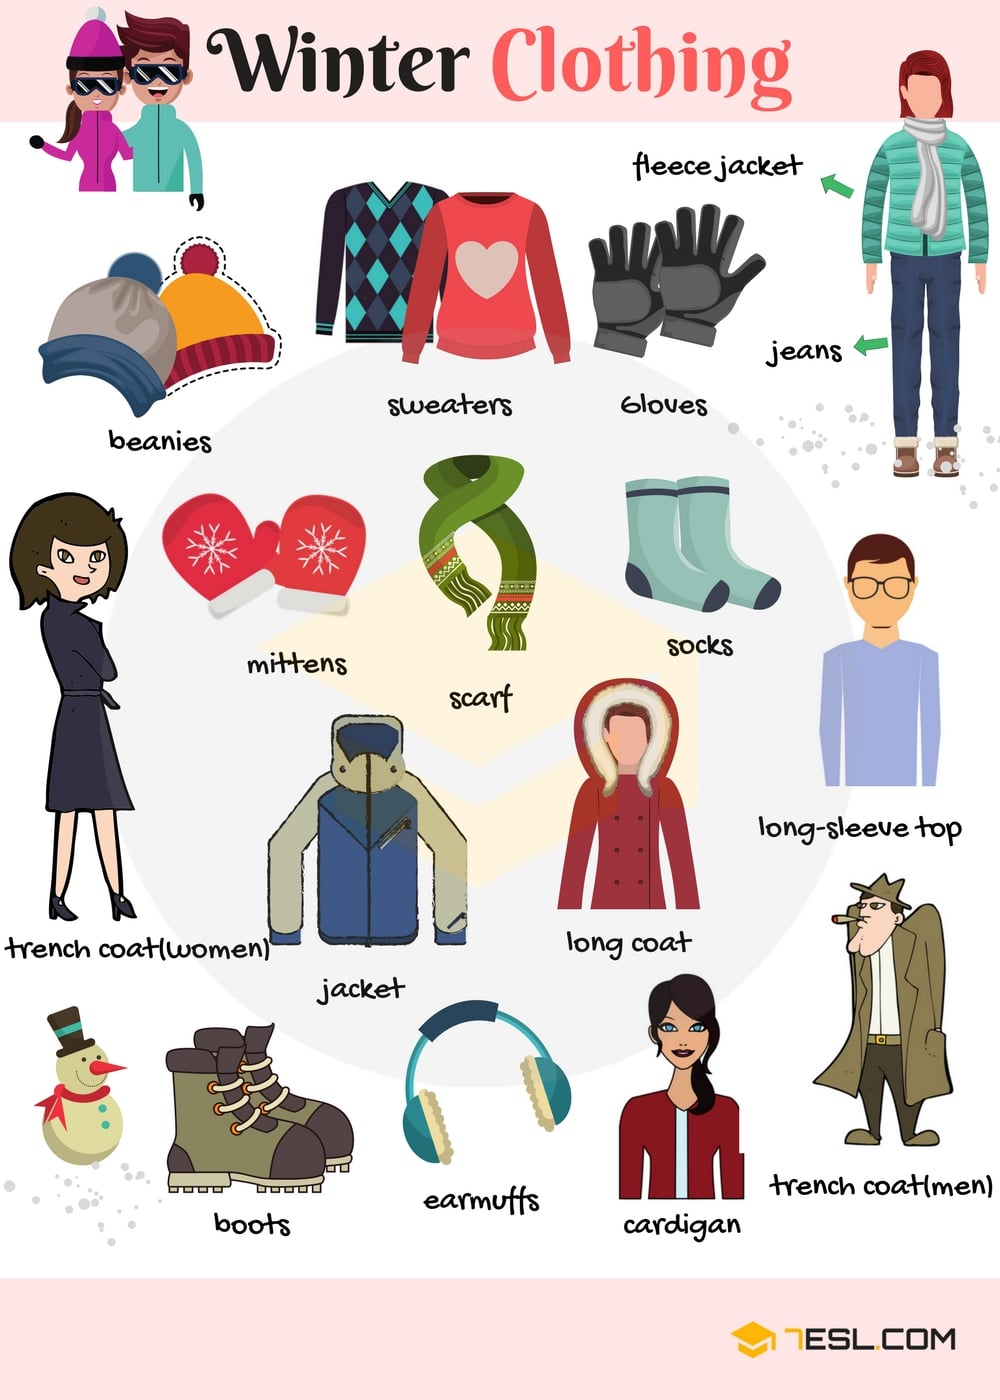 Learn Winter Clothing Vocabulary through Pictures